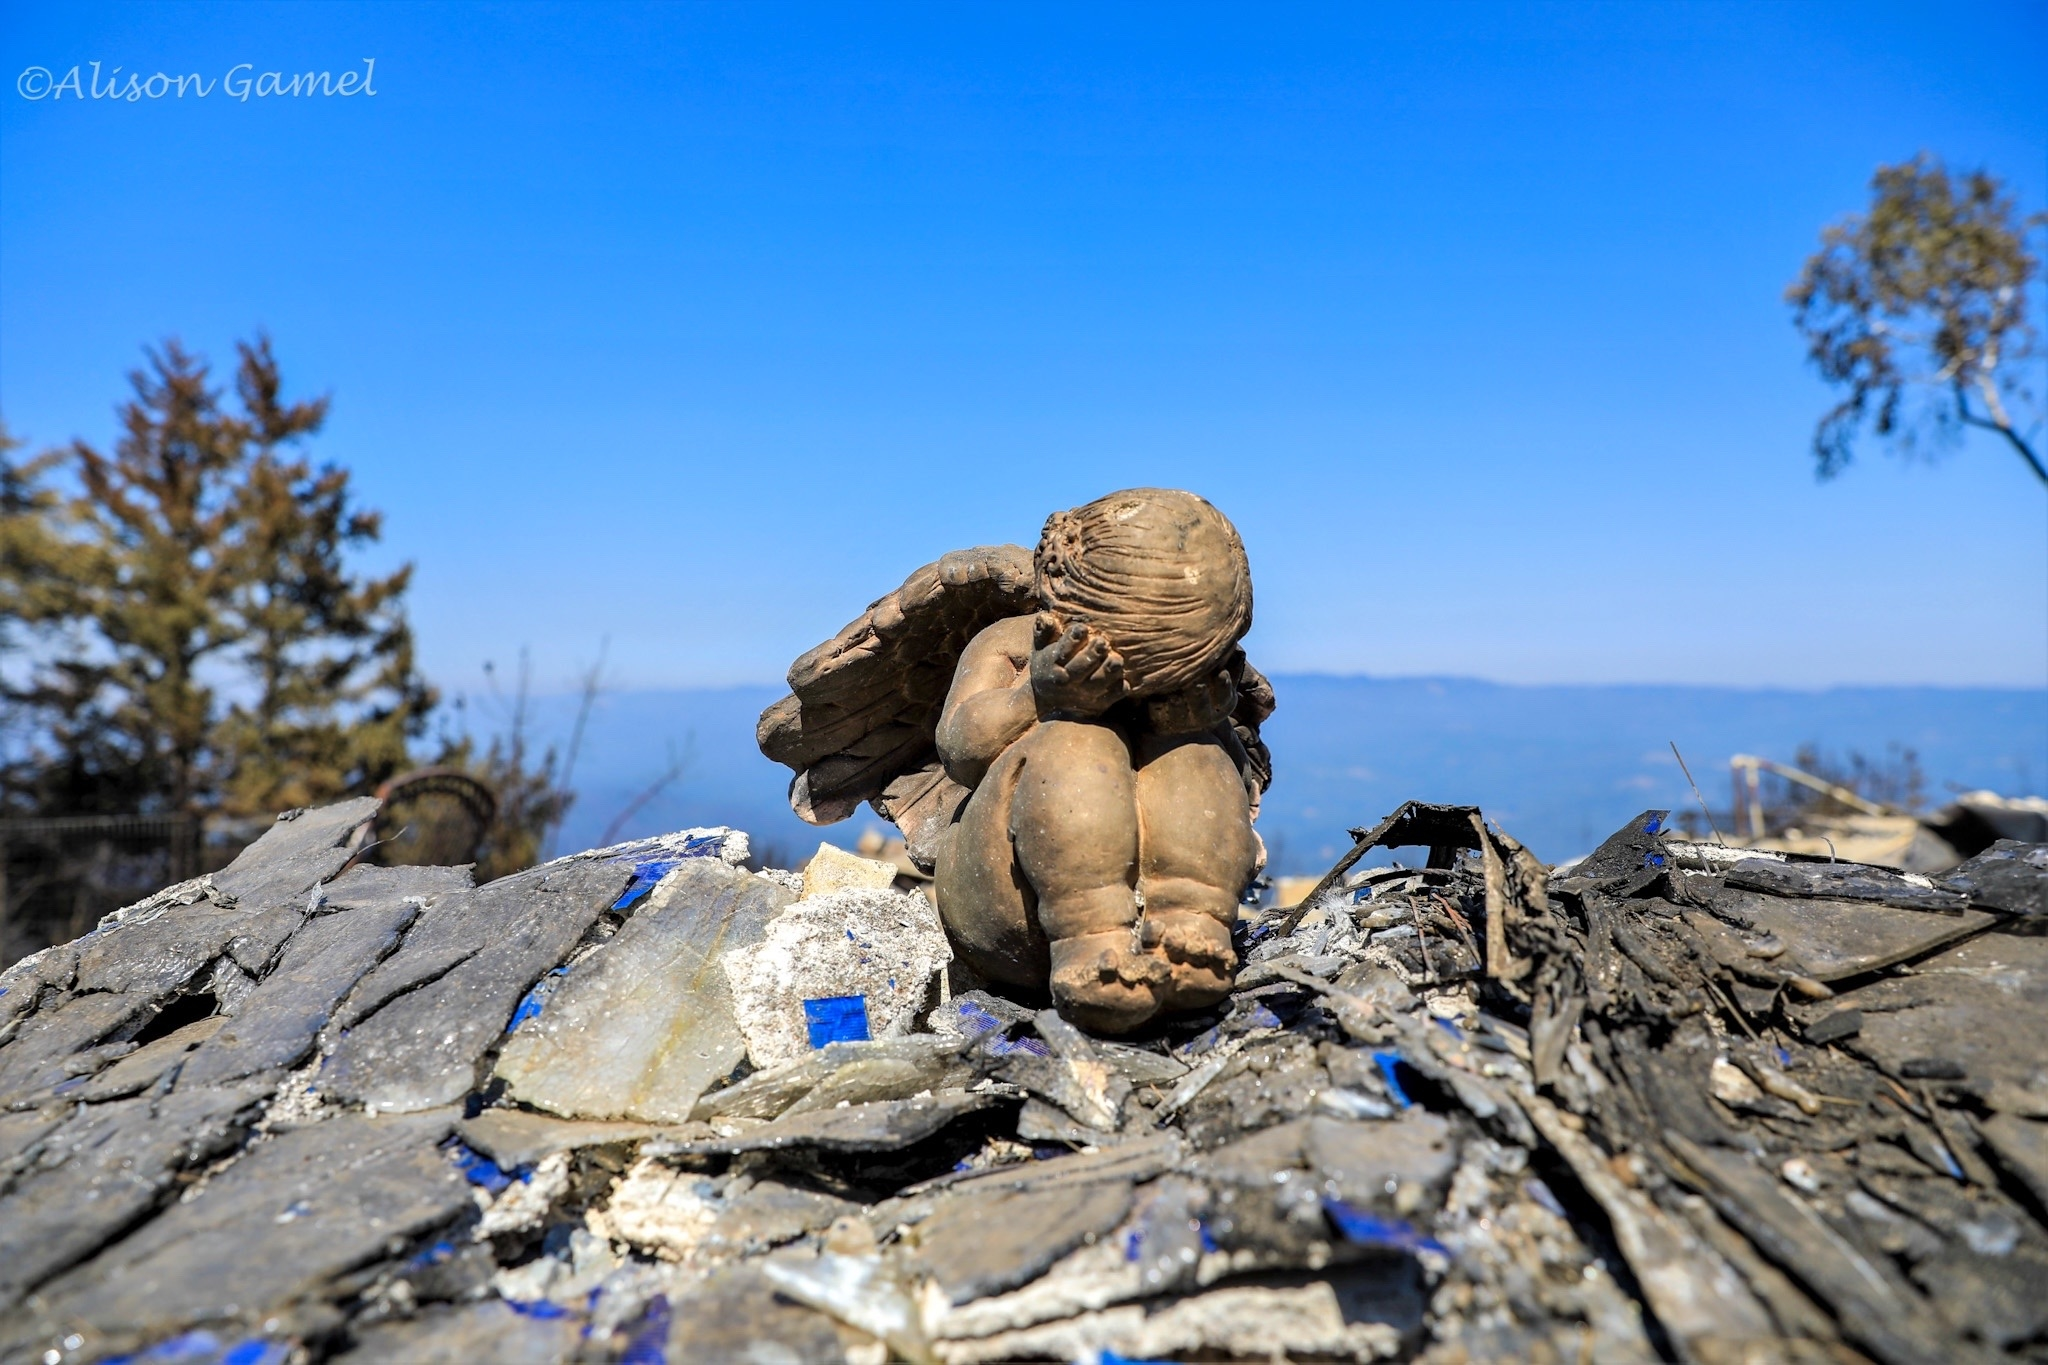 A stone sculpture of an angel with its head in its lan sits atop a pile of rubble with a clear blue sky behind it.